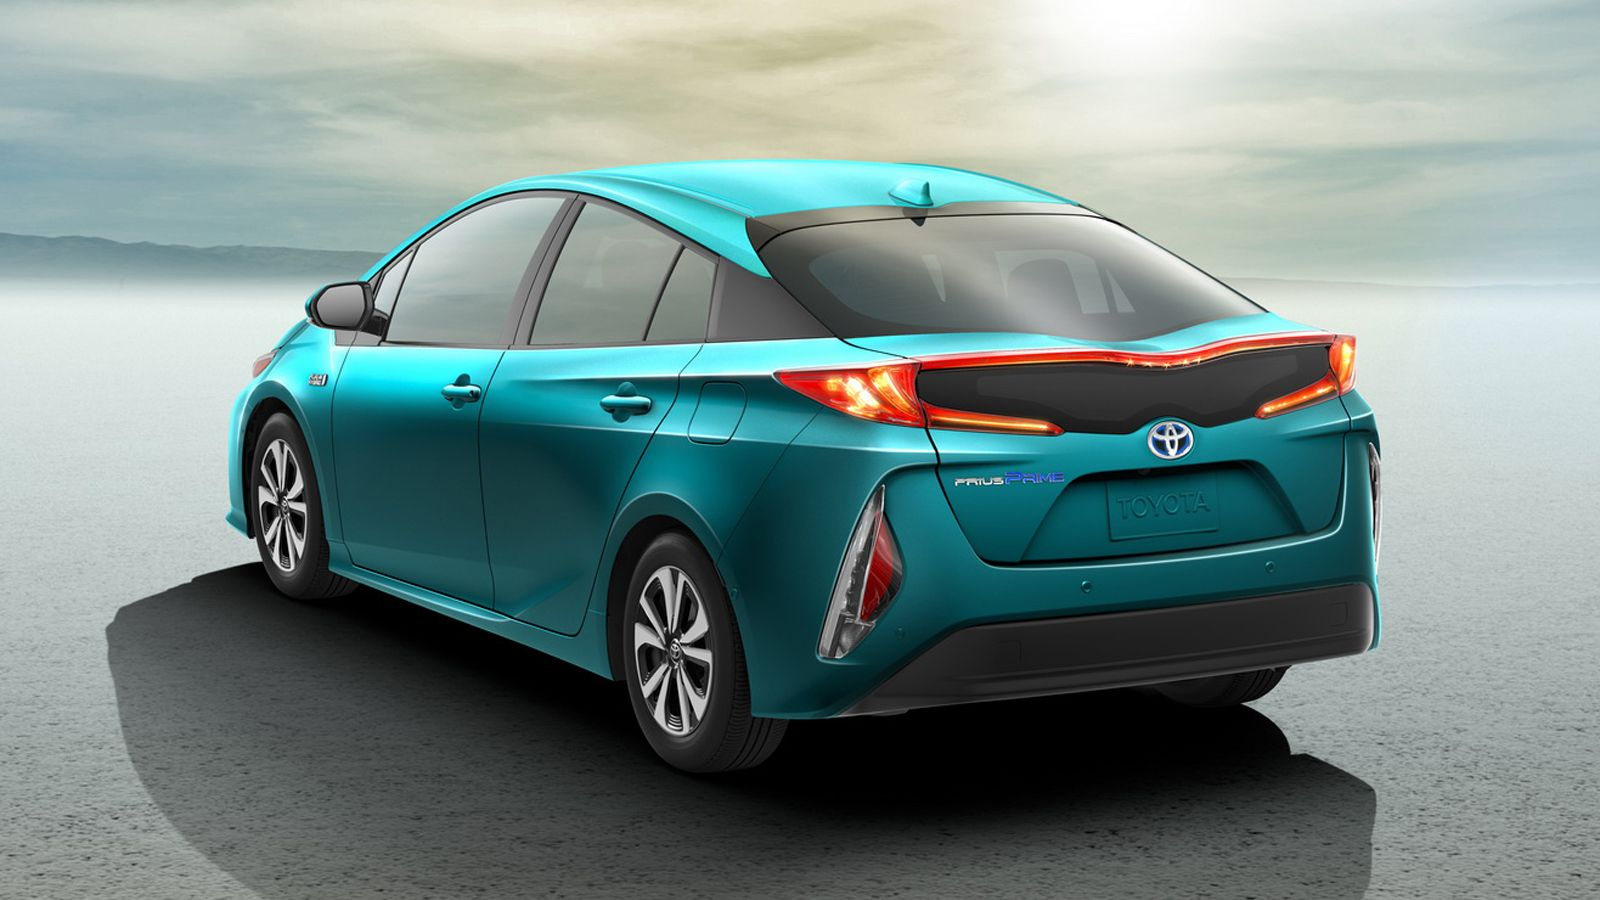 prius plug in hybrid toyota prius. Black Bedroom Furniture Sets. Home Design Ideas